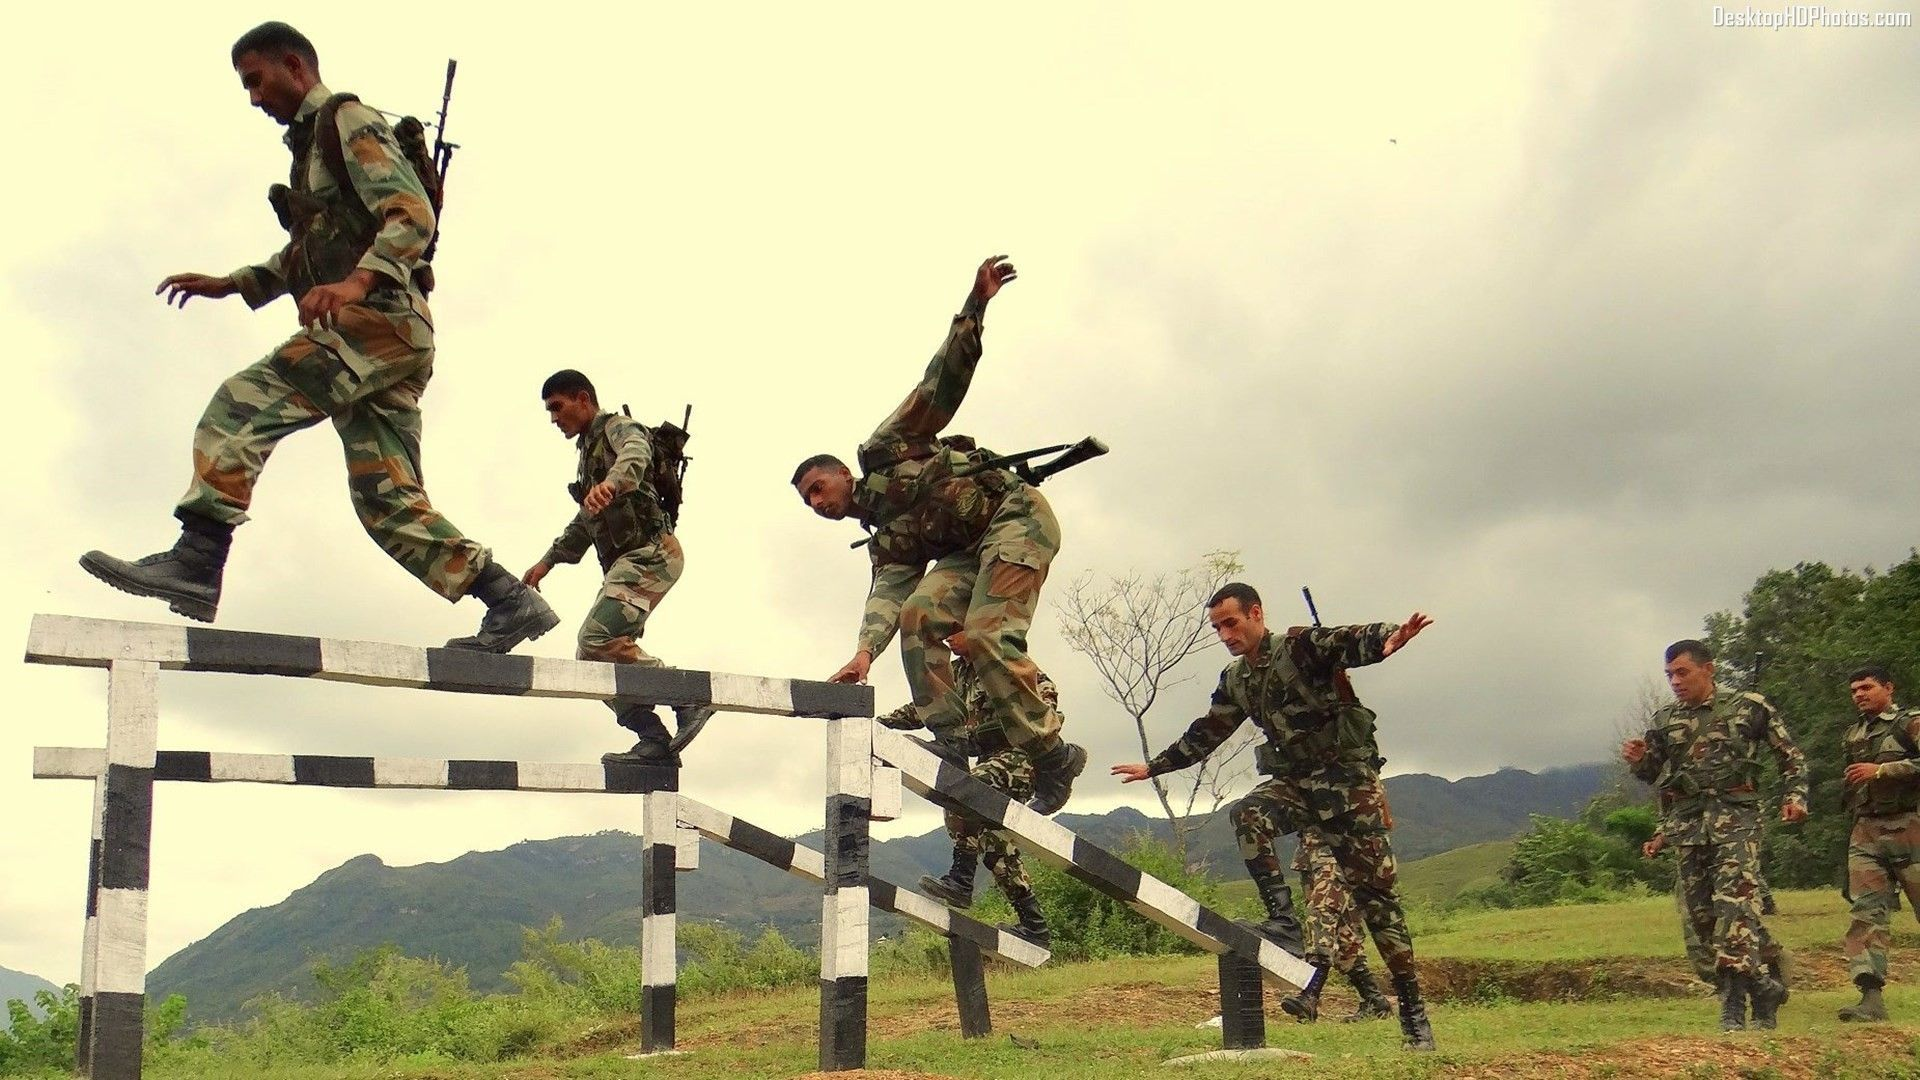 42 Cool Army Wallpapers In Hd For Free Download Indian Army Wallpapers Indian Army Army Wallpaper